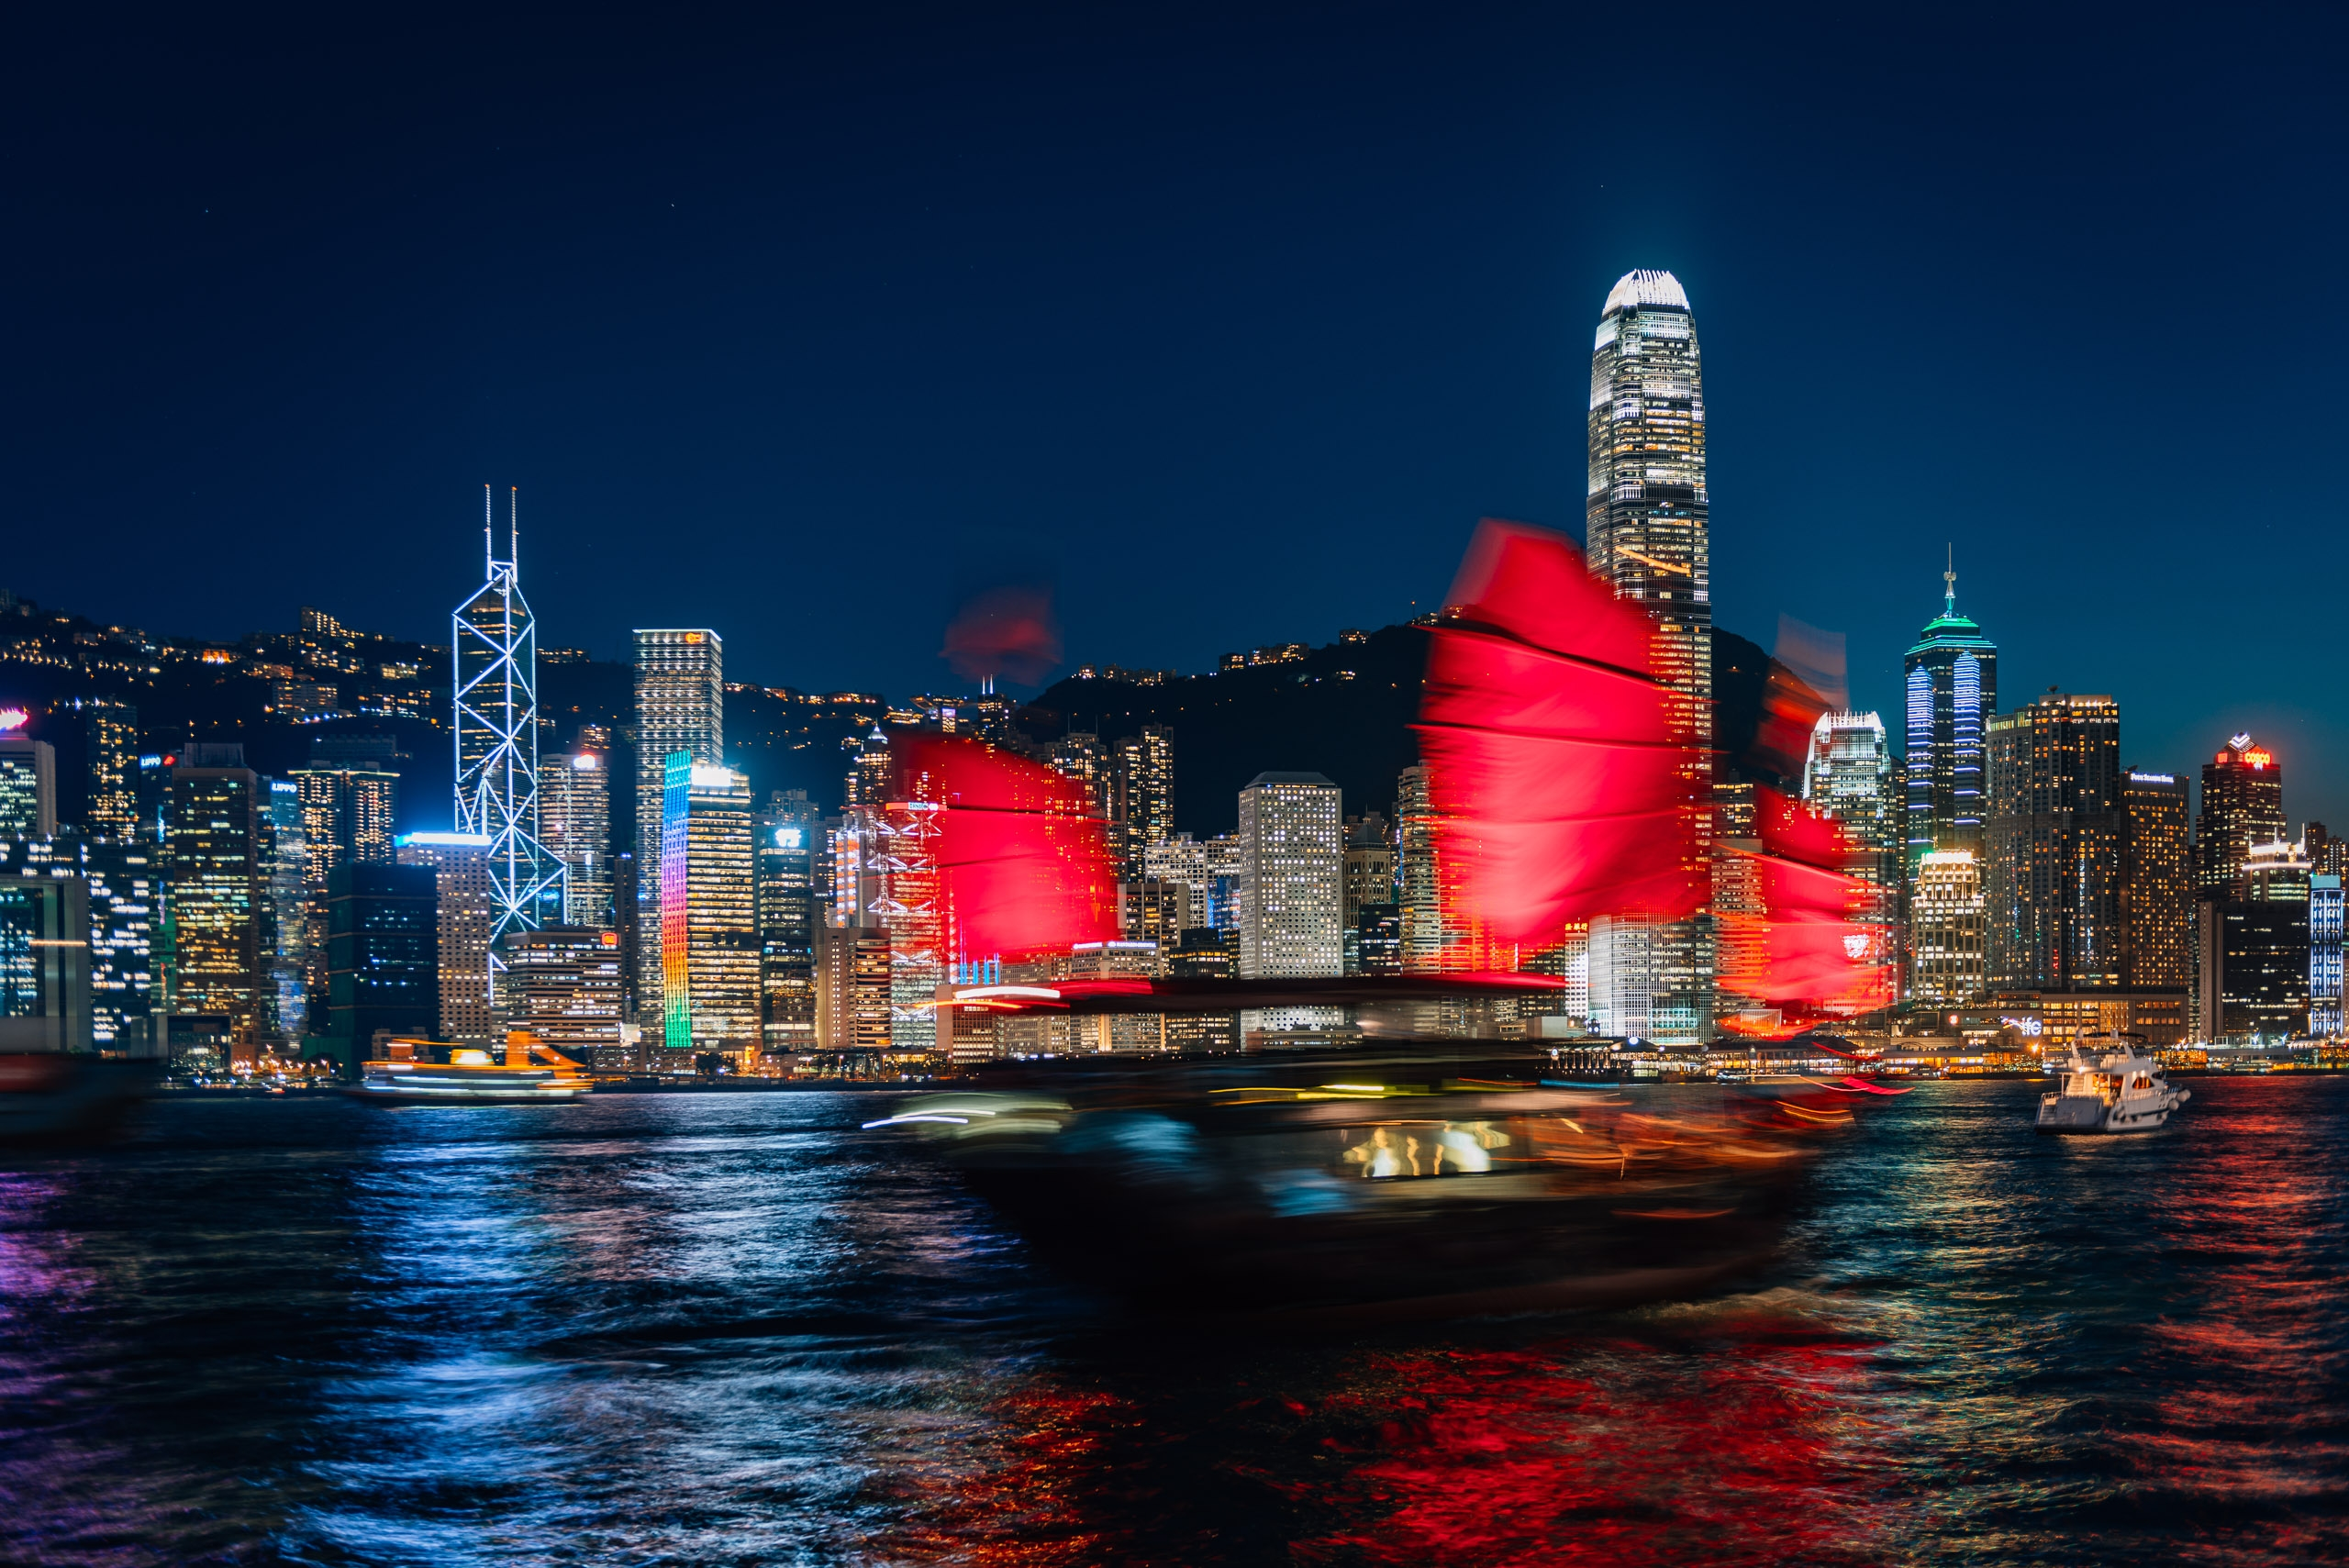 The Hong Kong Junk at Night